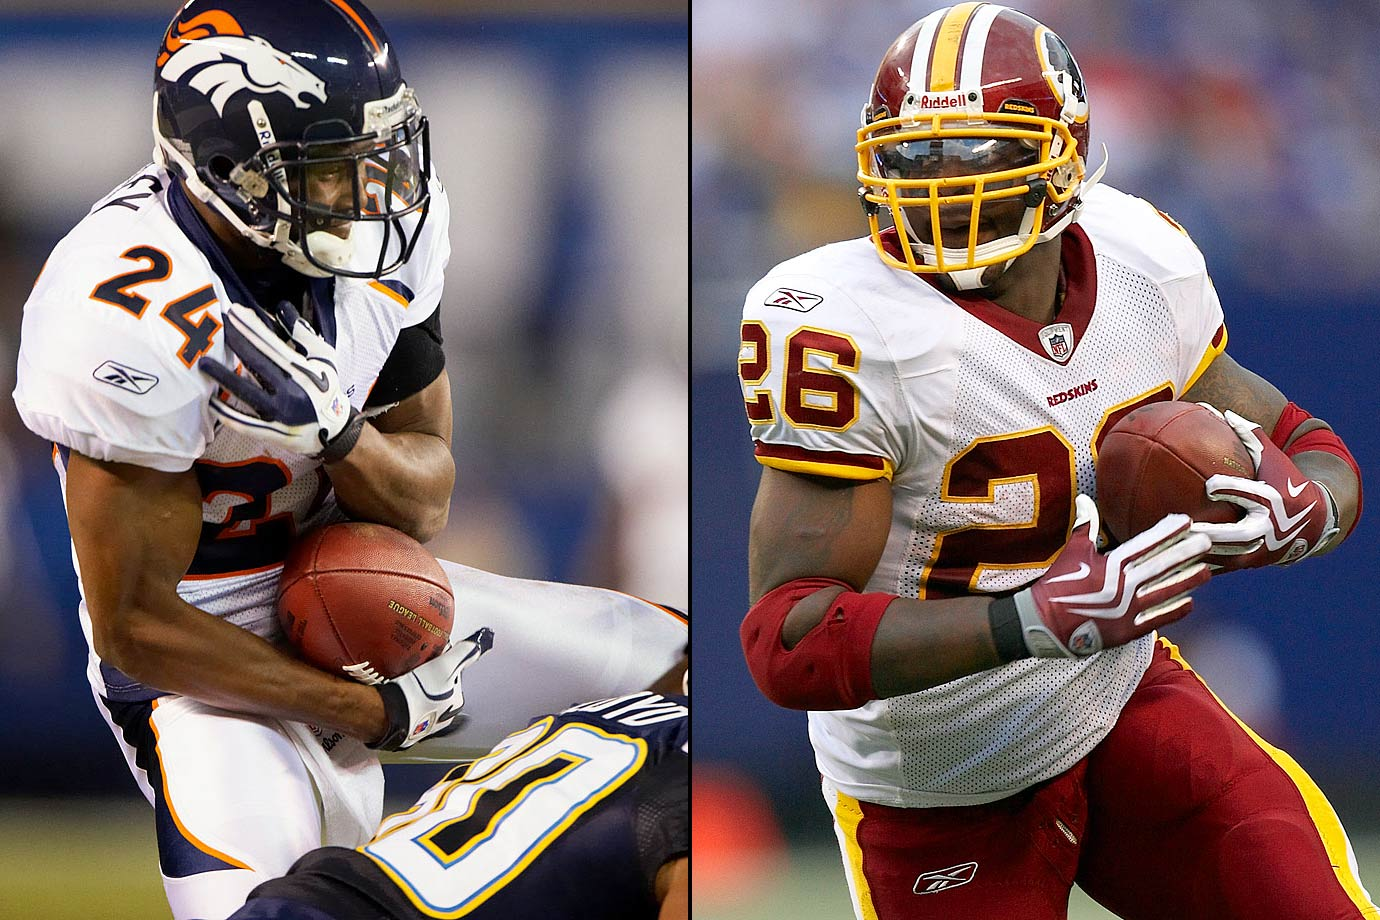 Champ Bailey and a second-round pick to the Broncos from the Redskins for Clinton Portis. One of the most intriguing and fair deals in NFL history saw the top cover cornerback in the game, Bailey (plus a draft pick that became running back Tatum Bell), go west while one of the league's top runners, Portis, headed to D.C.